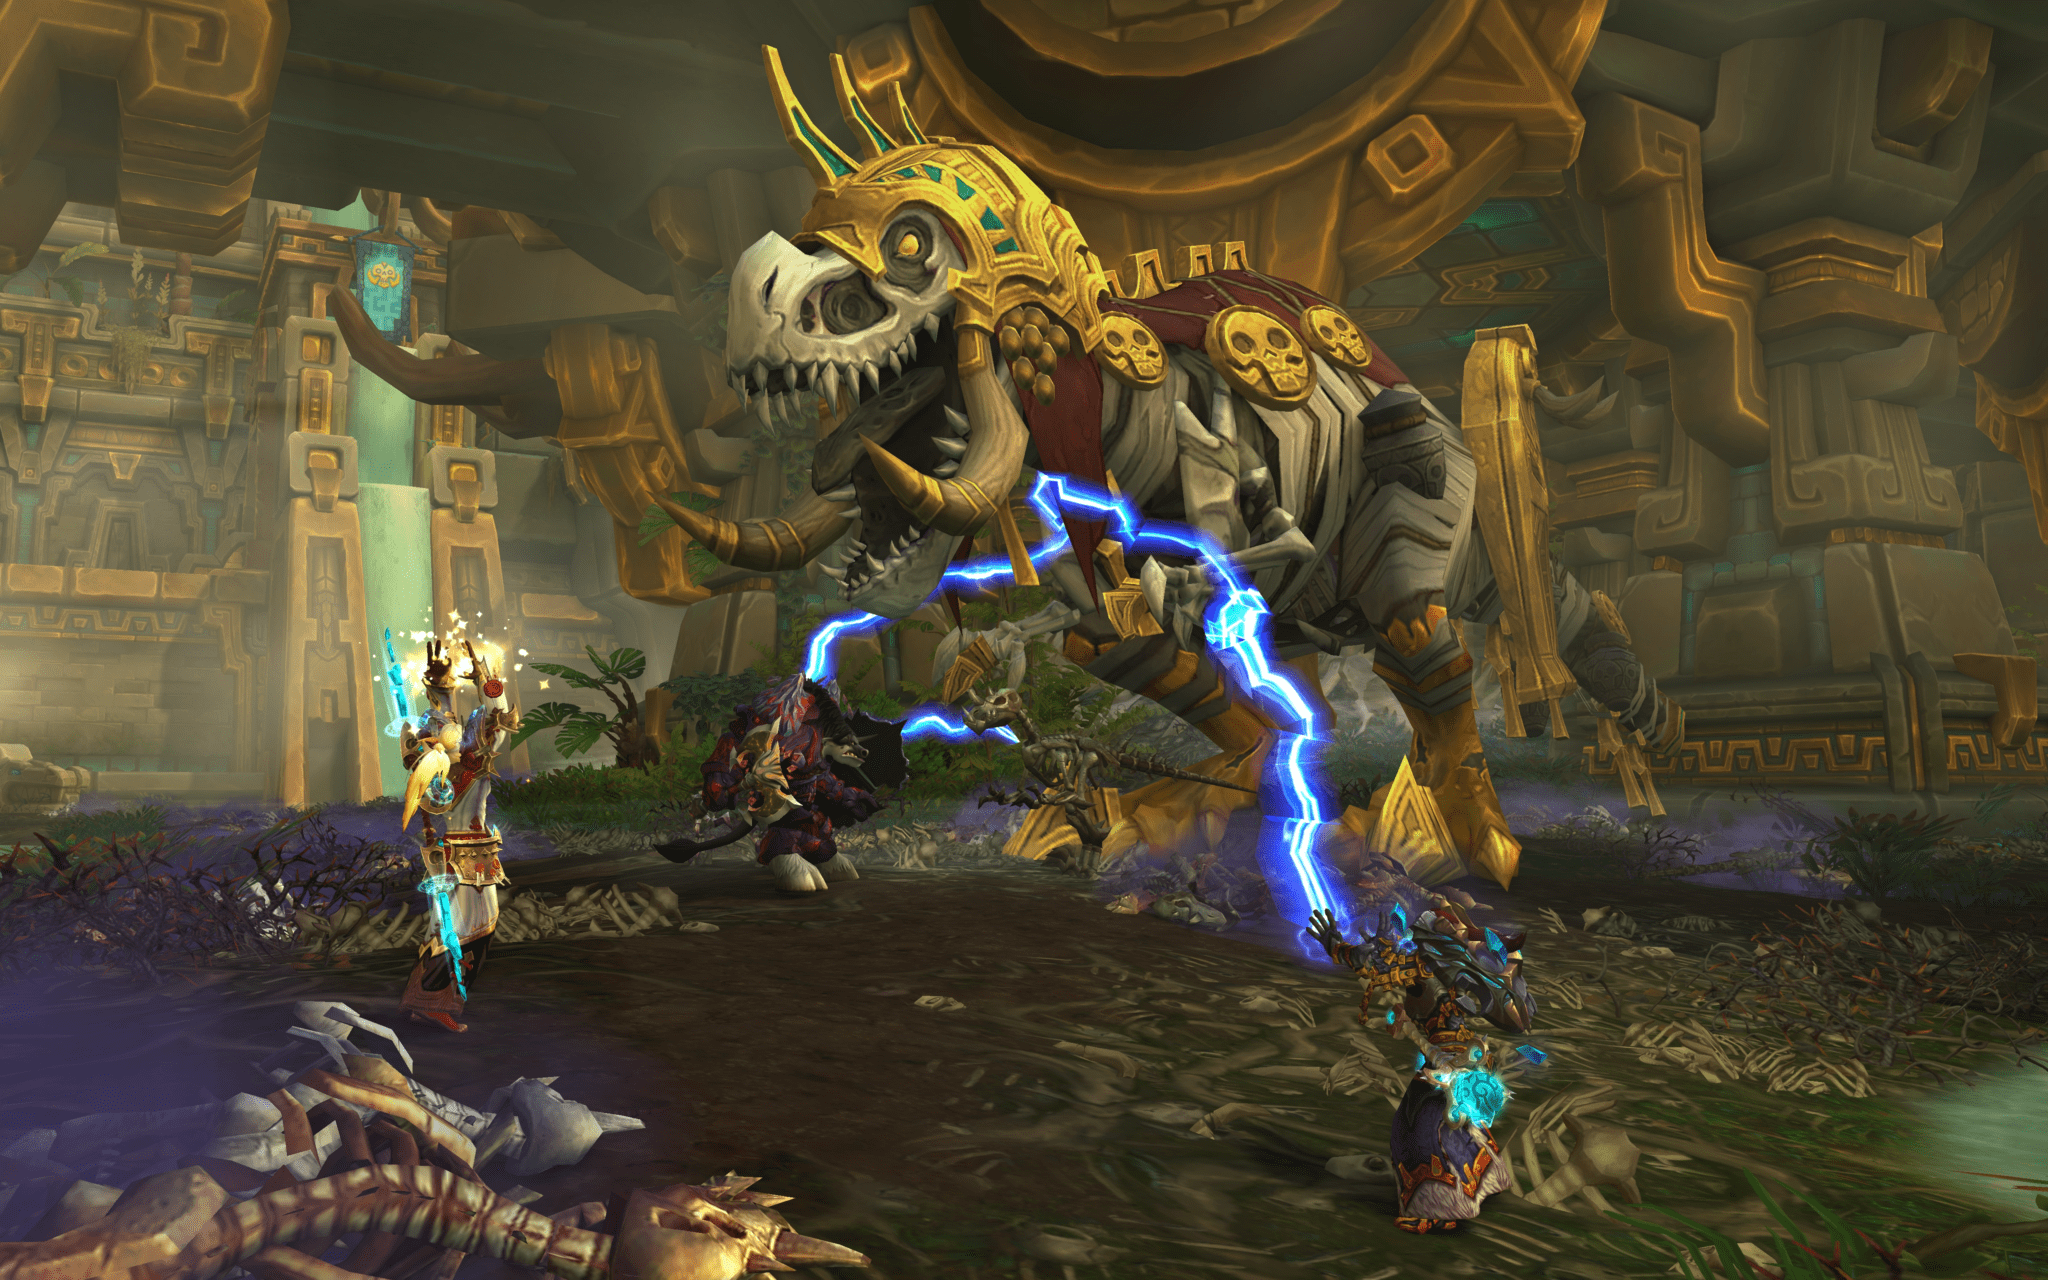 World of Warcraft's story is heading down a weird, wild path